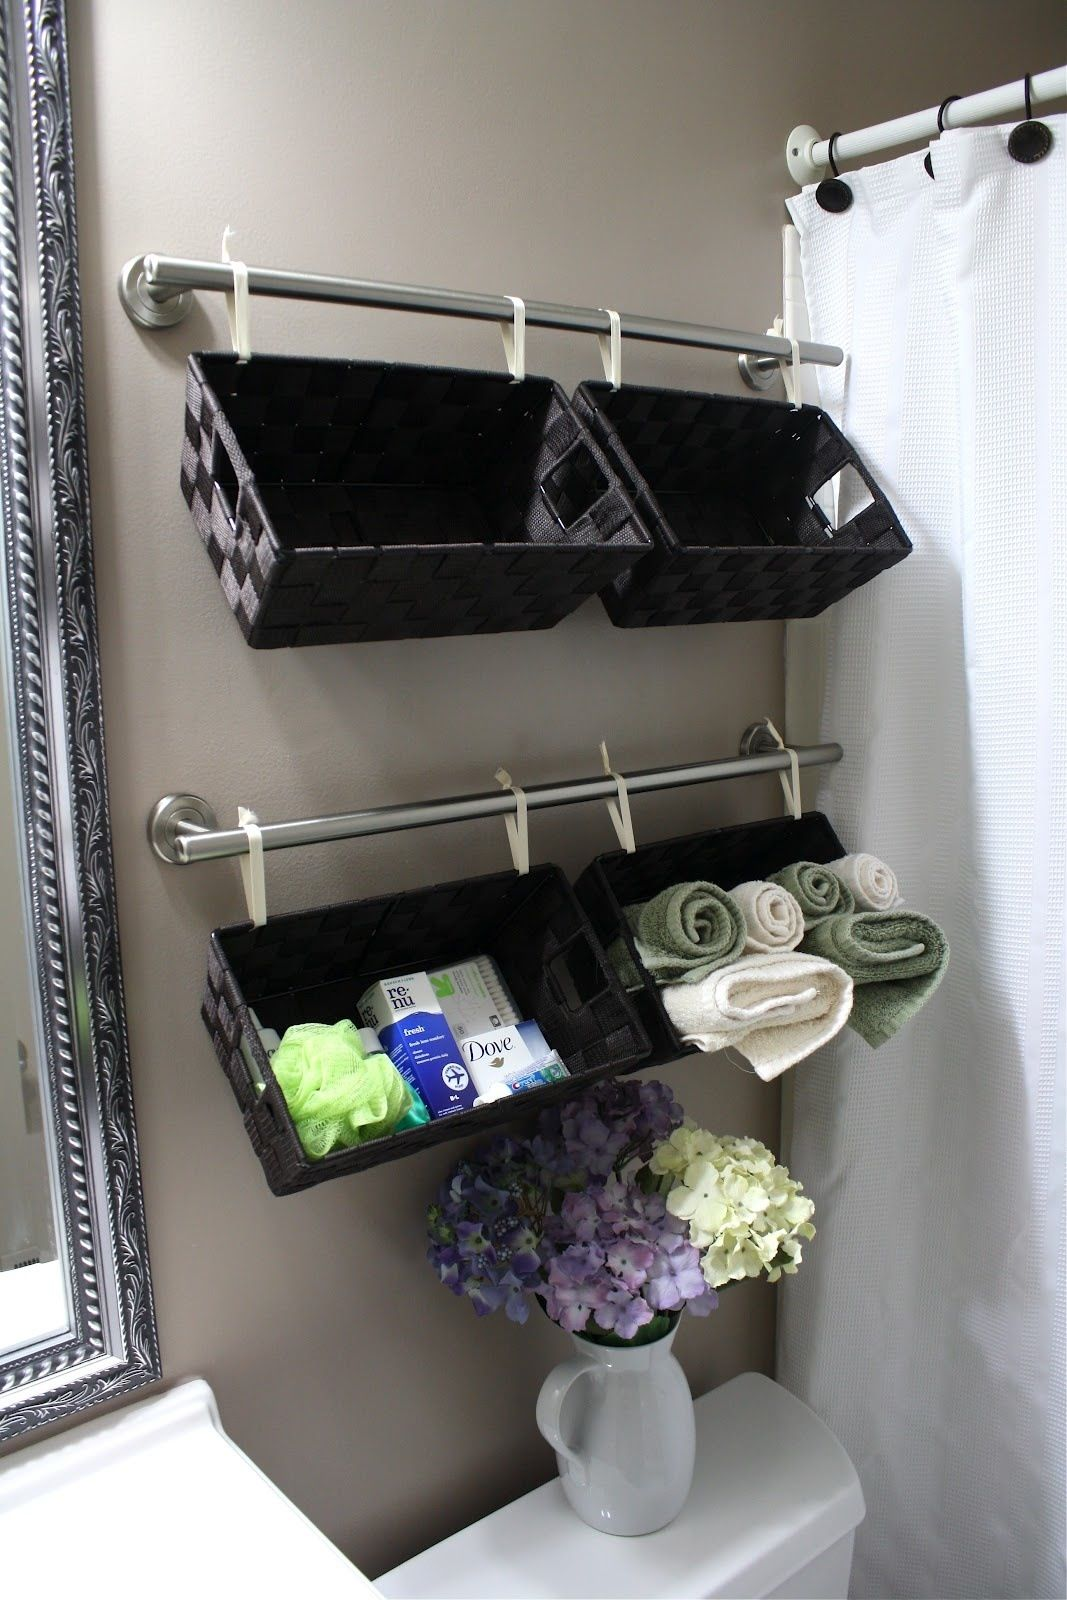 21 DIY Bathroom Organizational Projects That Will Make Your ...